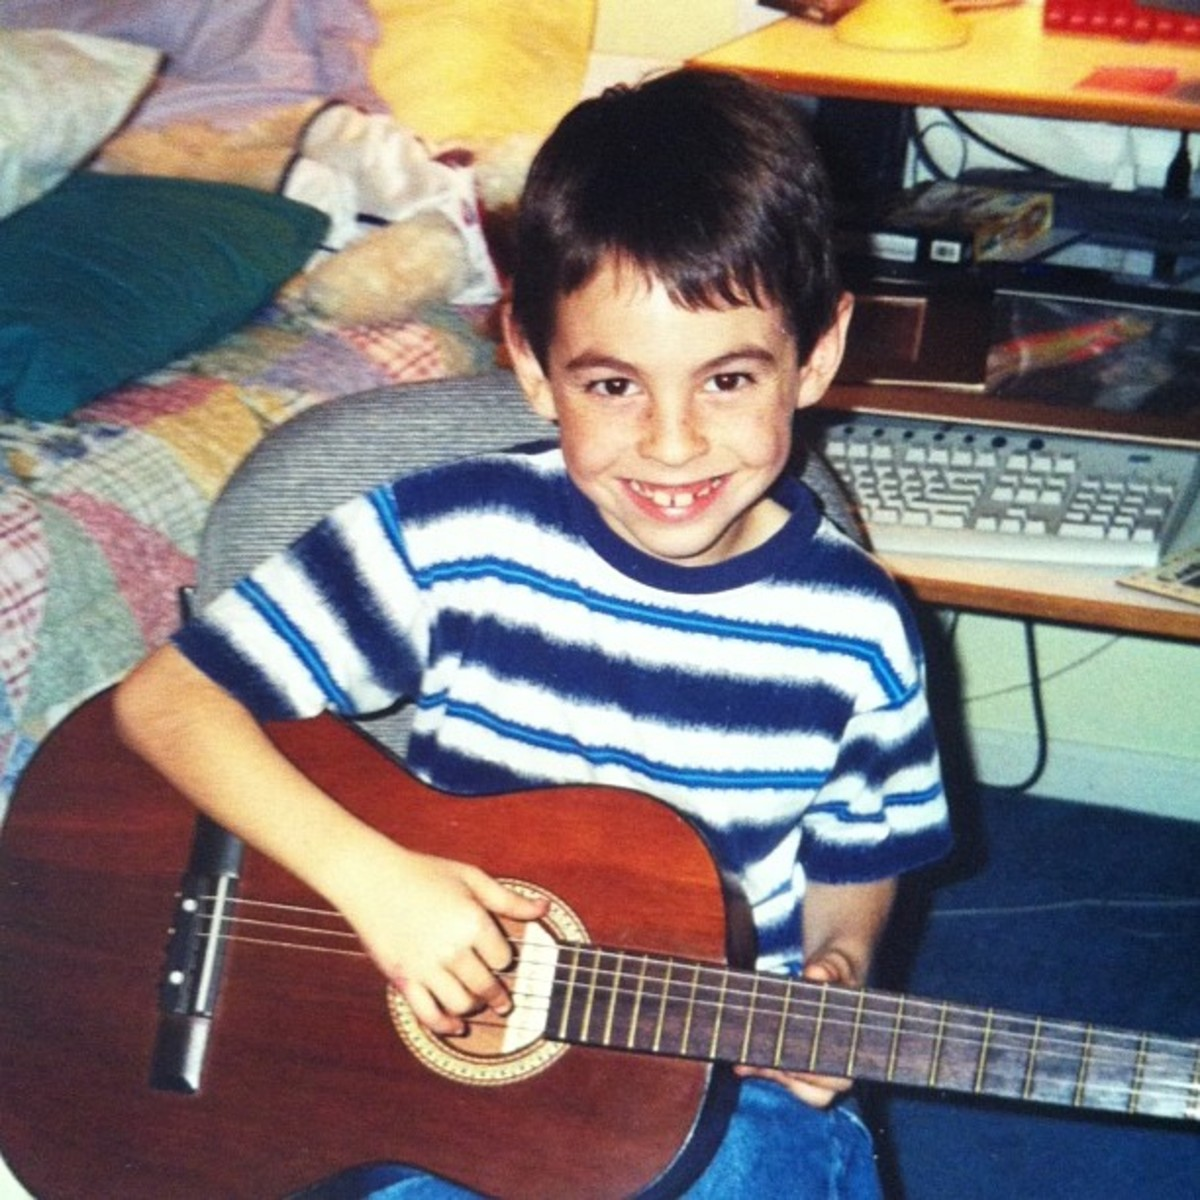 my little brother playing his guitar back in the day